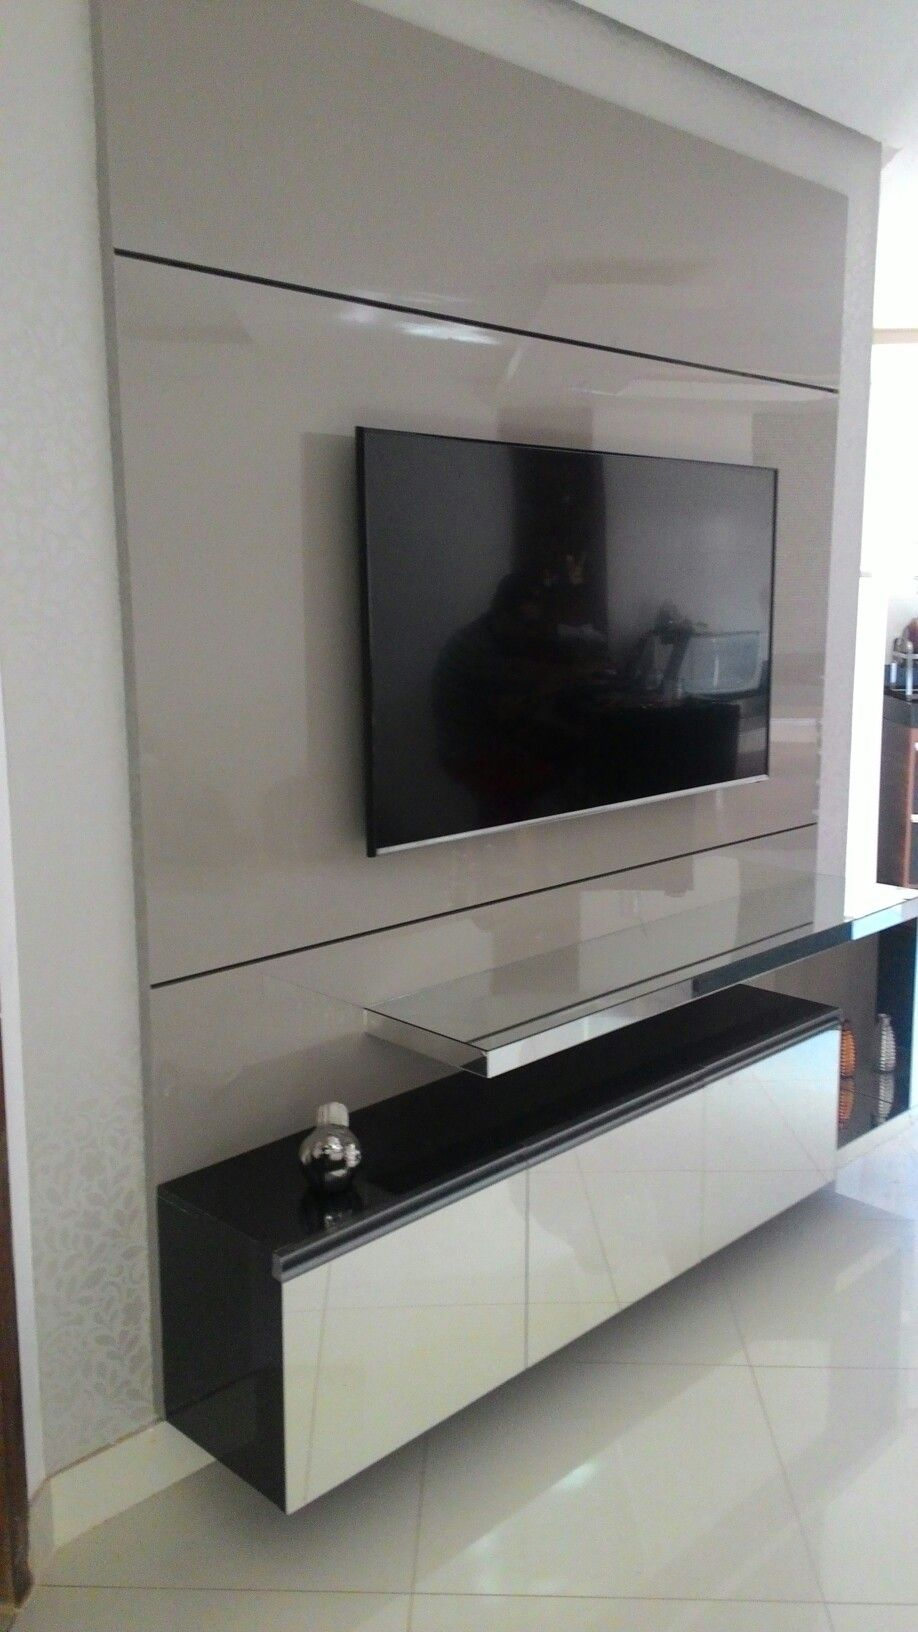 Led Tv Panels Designs For Living Room And Bedrooms: Pin By Custowood Interior Design On LED Panels